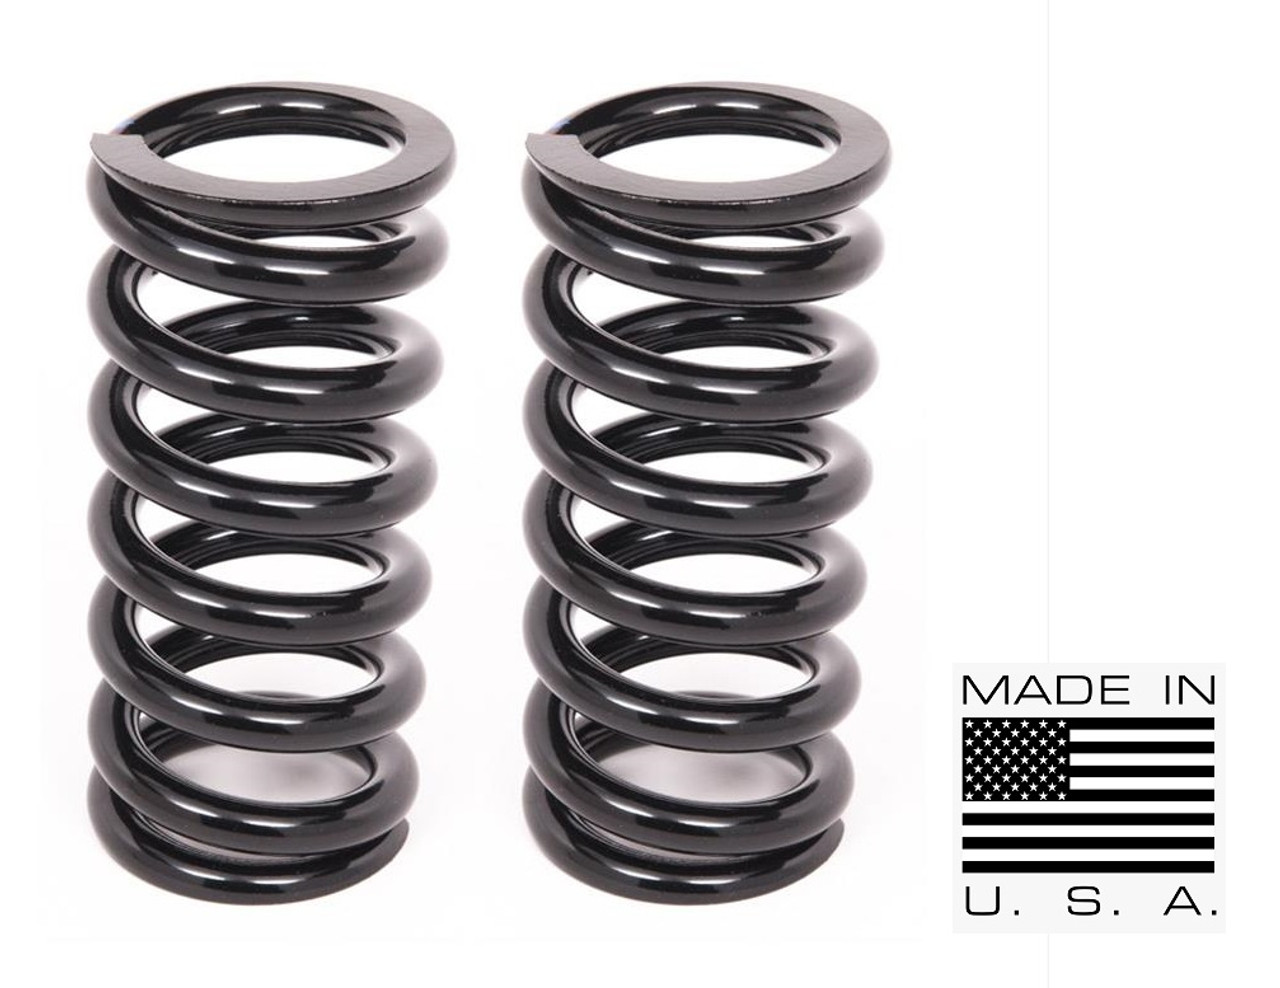 1. SPEC COIL OVER FRONT